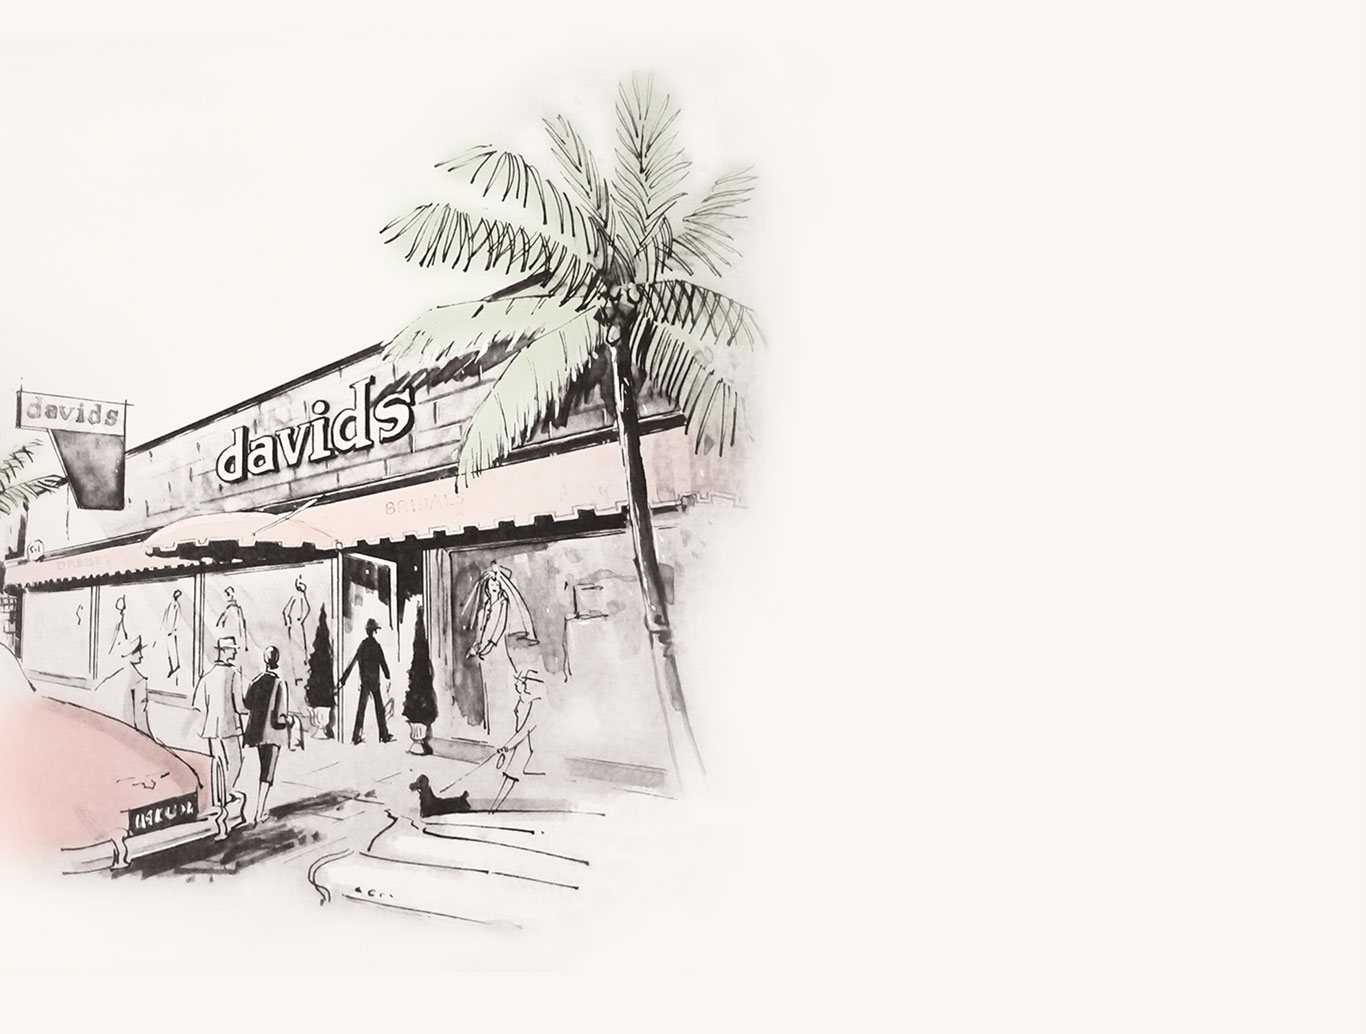 Drawing of original David's Bridal store